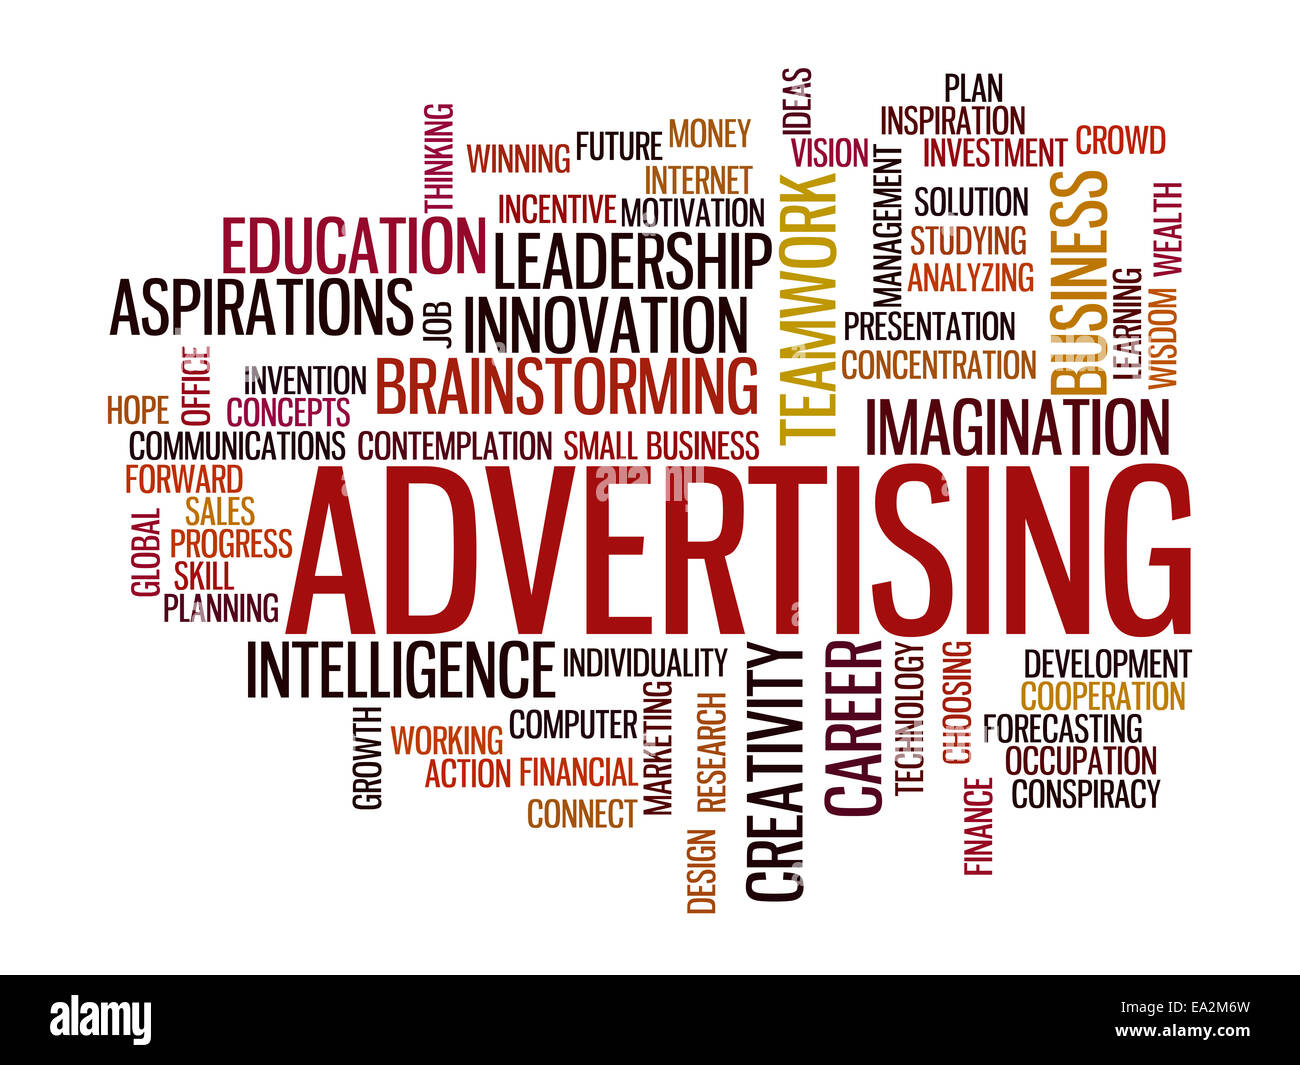 advertising vision concept word cloud Stock Photo